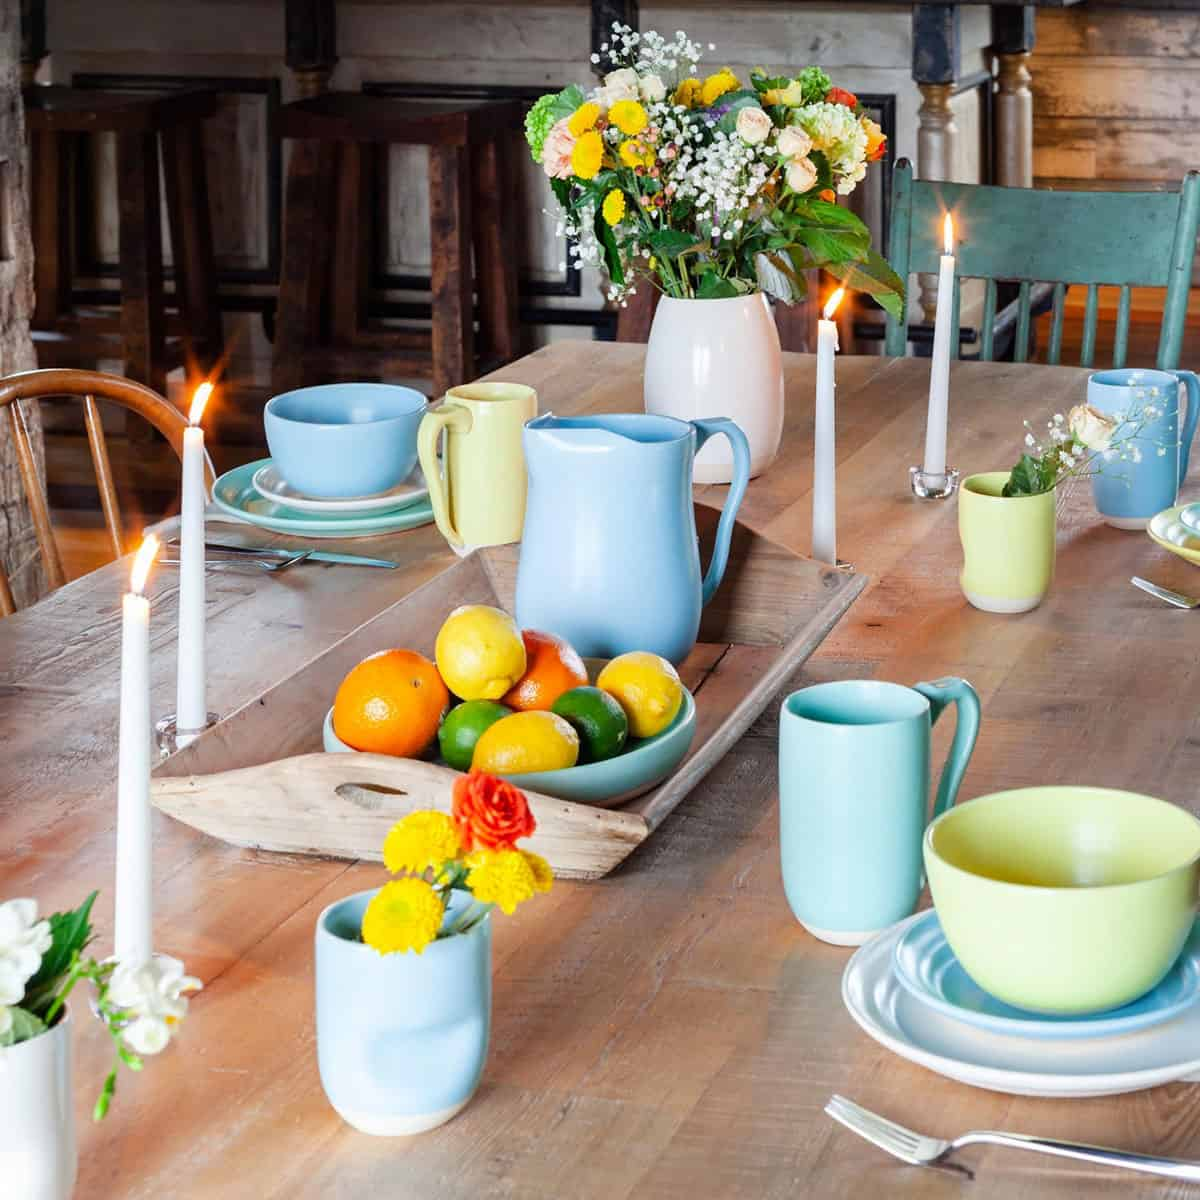 Tablescape of handmade clay dishware on a wooden farm table.